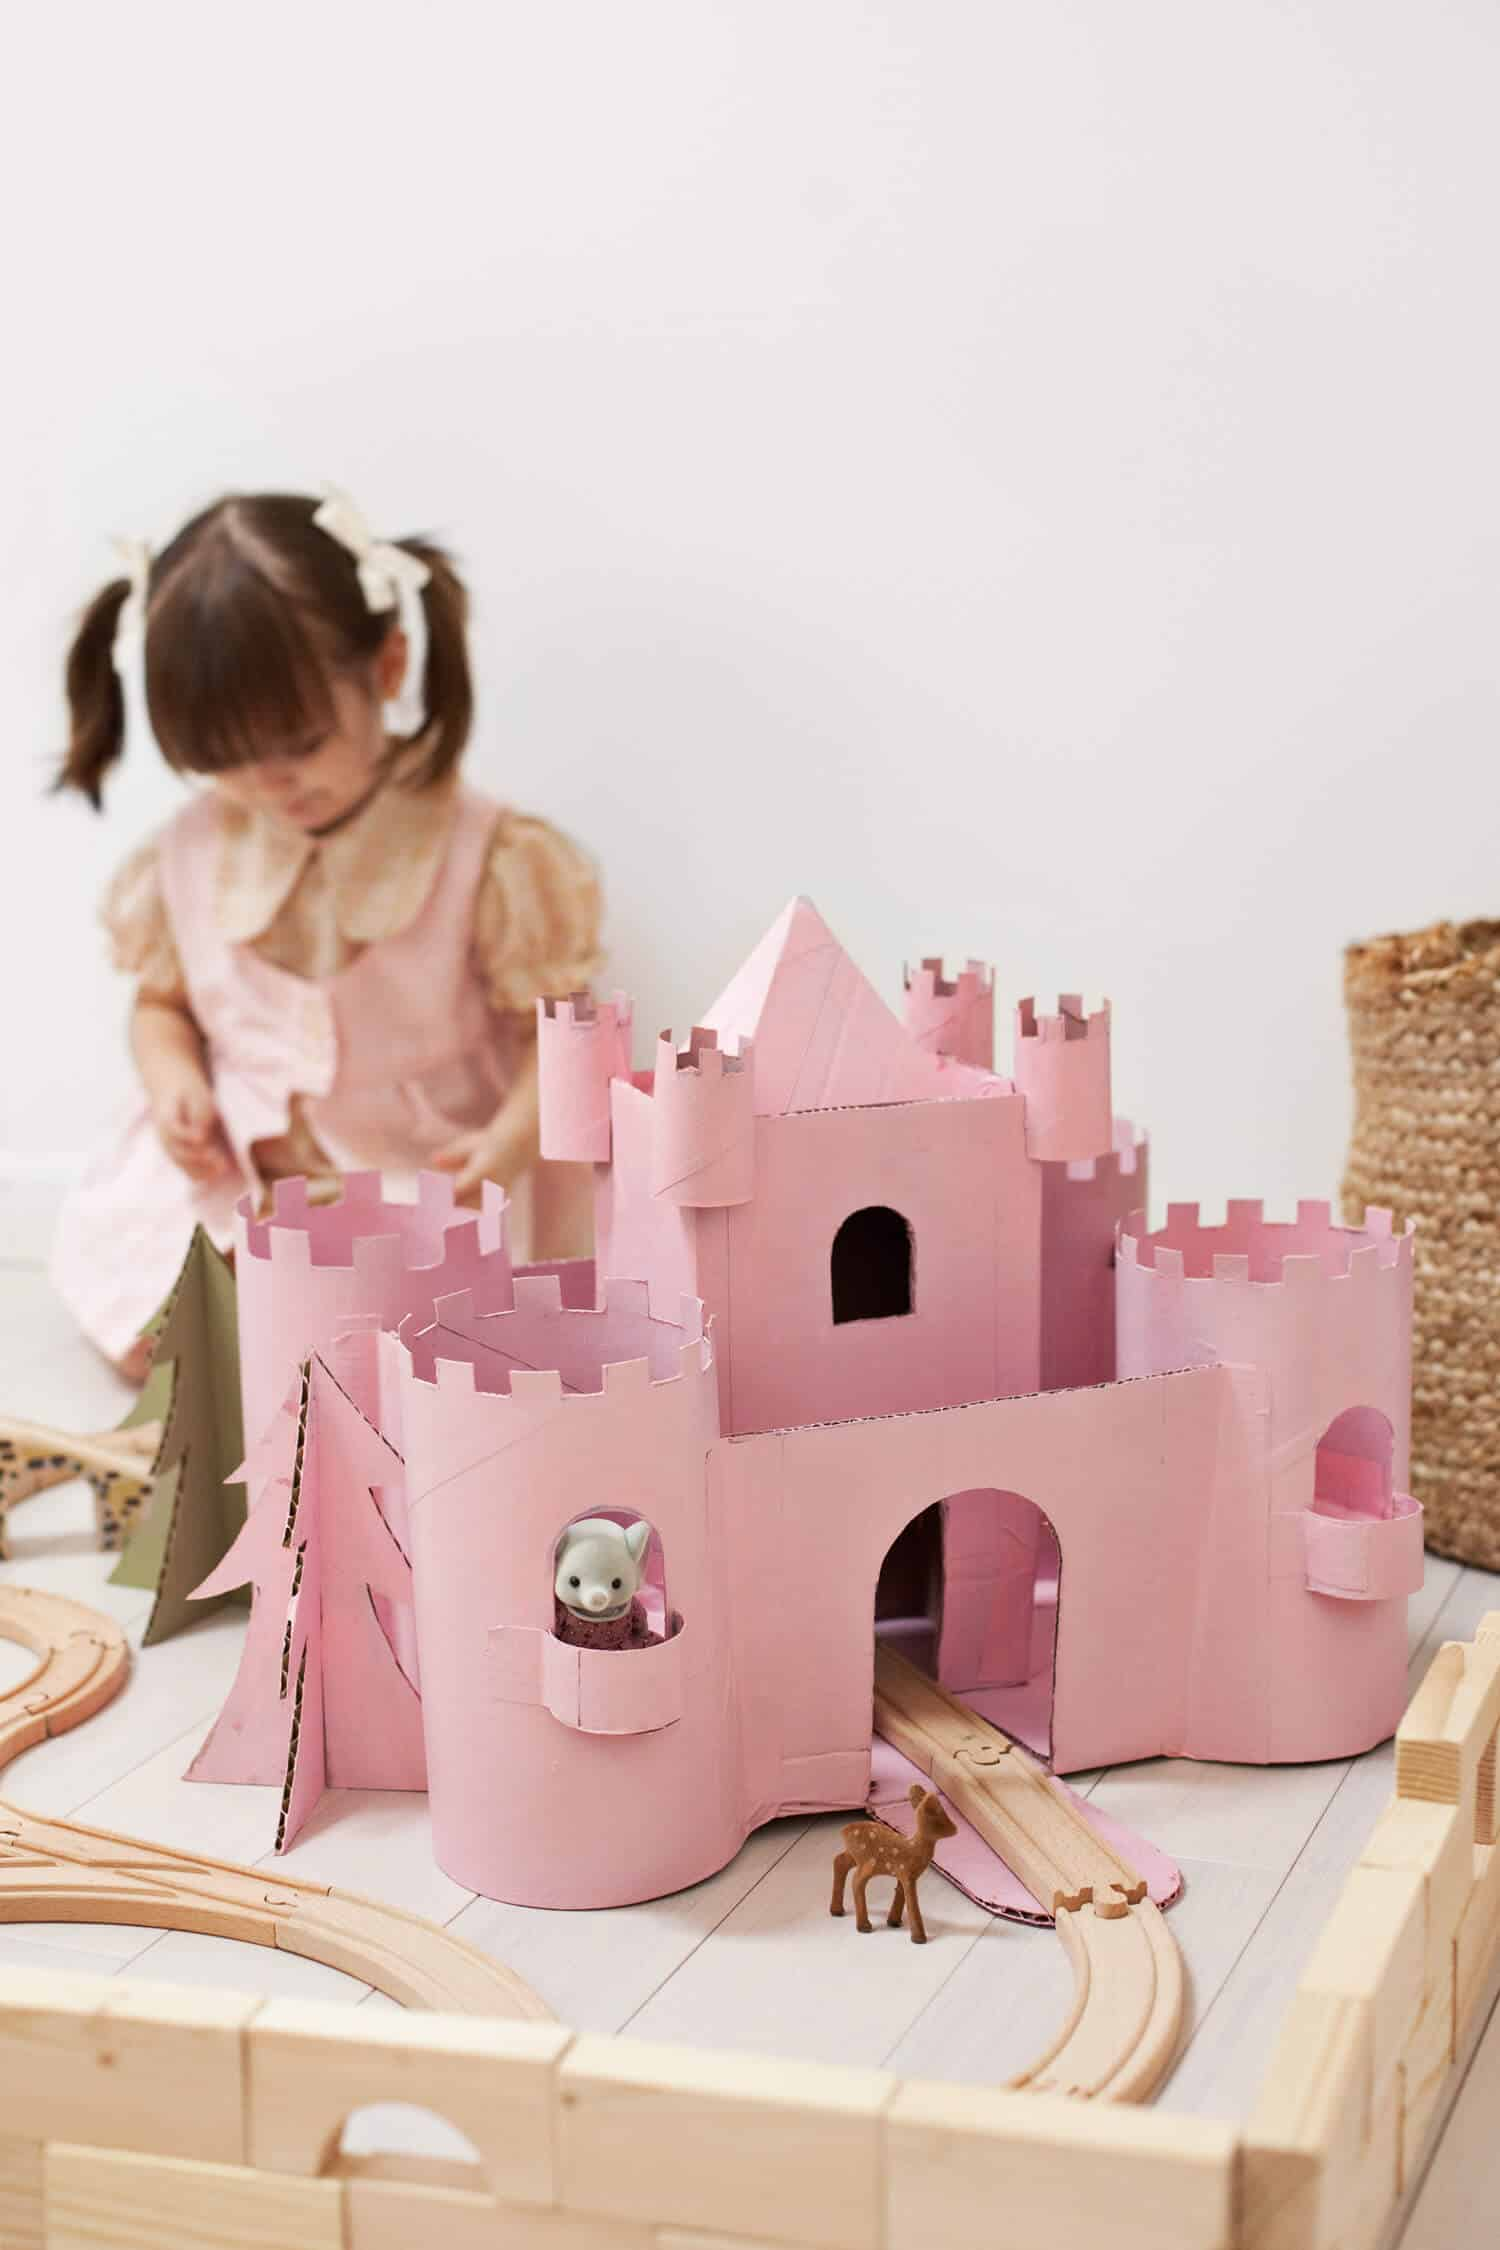 Best Castle Toys For Kids : Build a toy castle from upcycled cardboard beautiful mess